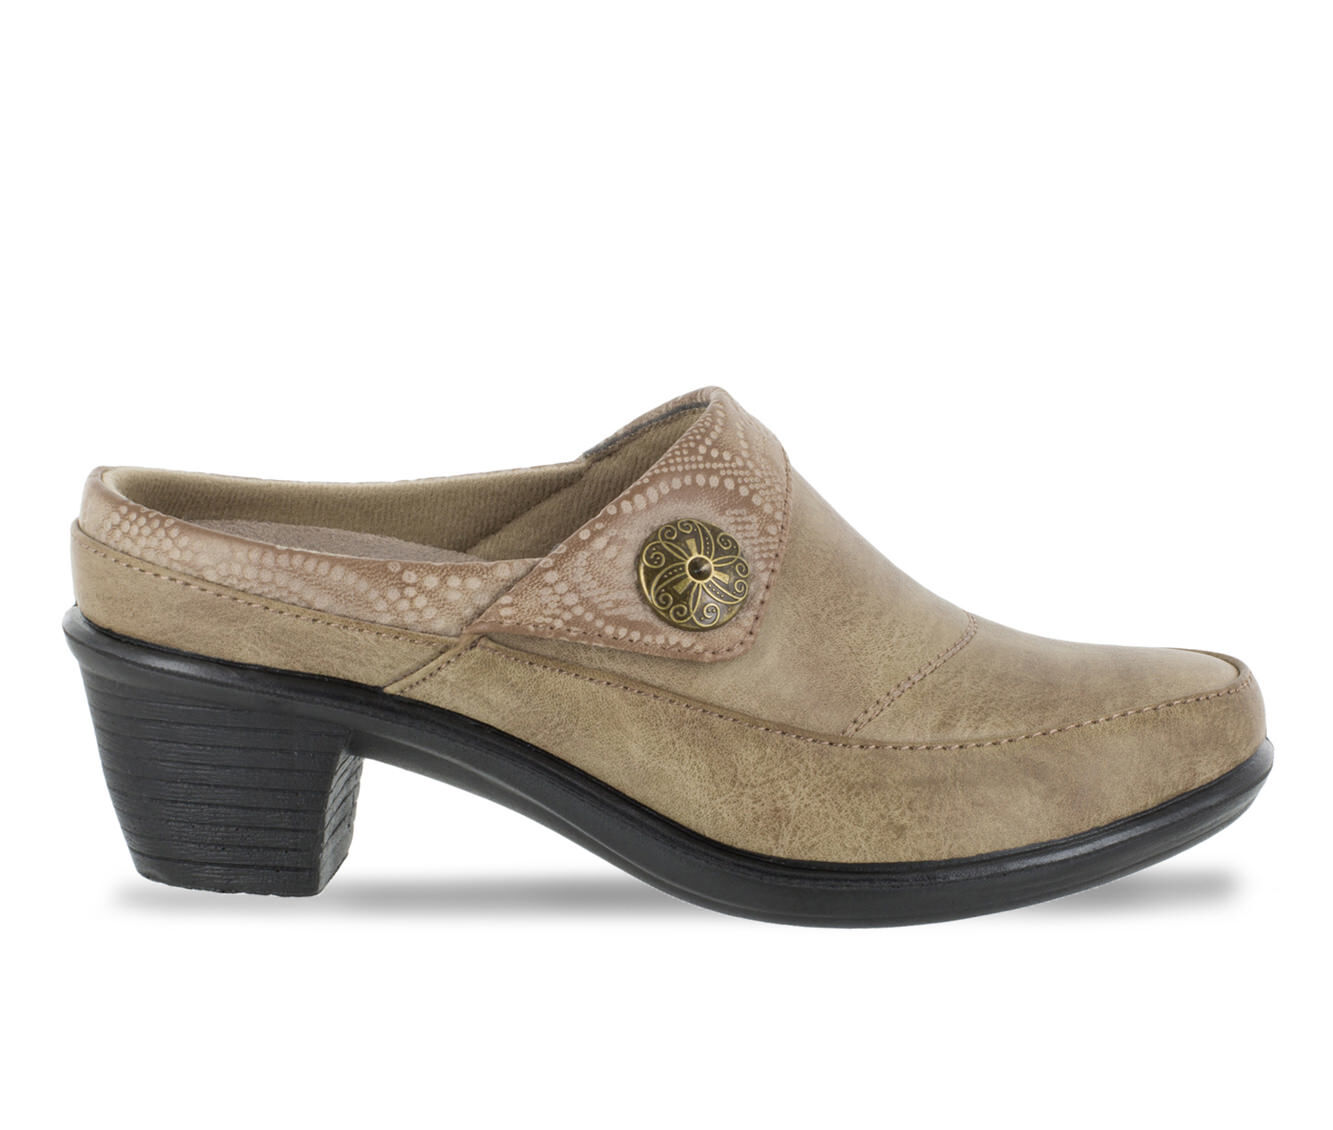 Women's Easy Street Journey Shoes Taupe/Embossed